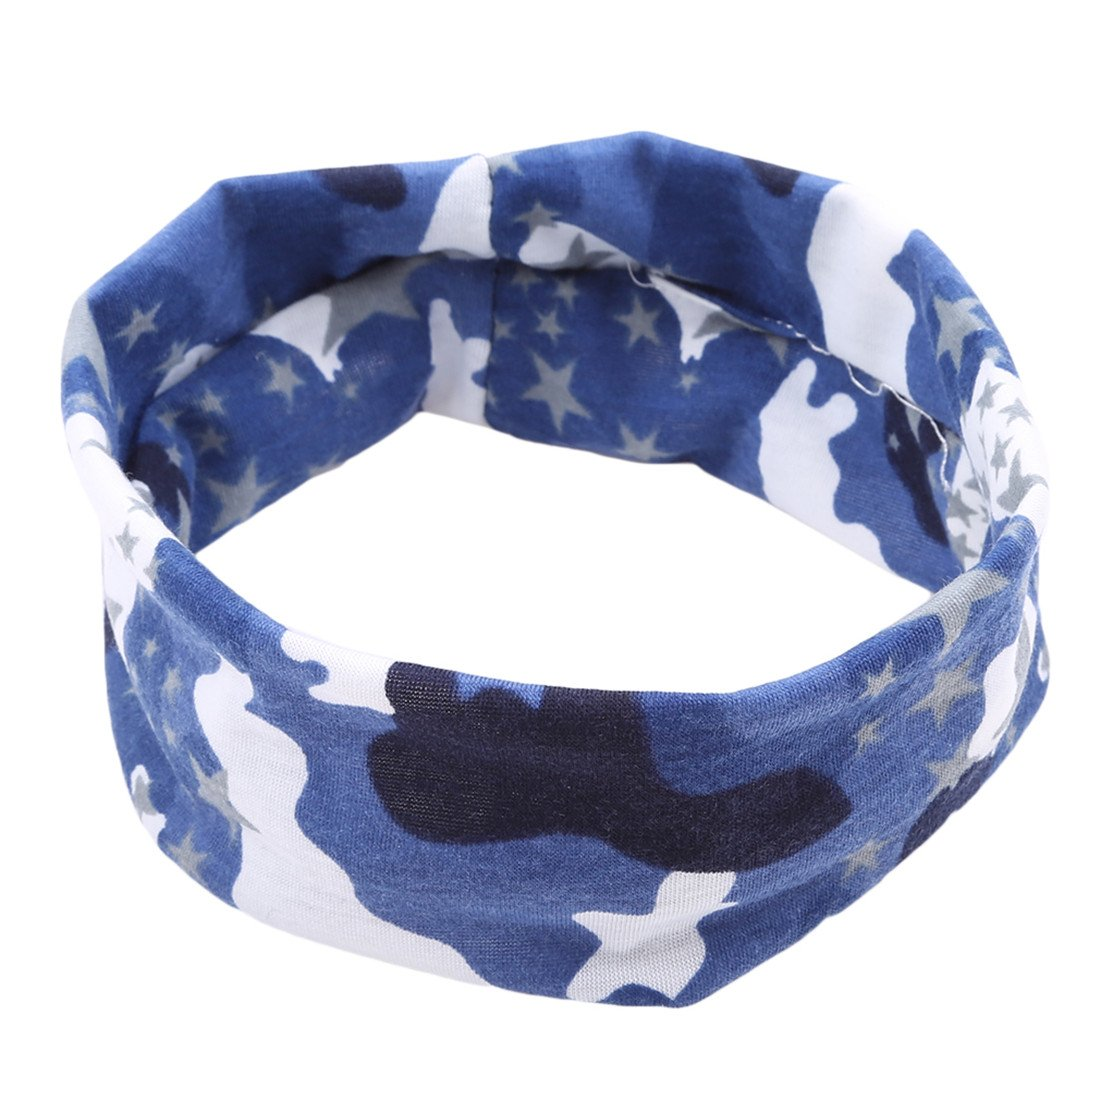 VWH Cotton Elastic Sport Headband Stretch Hairband for Running Workout Yoga Fitness (Blue)